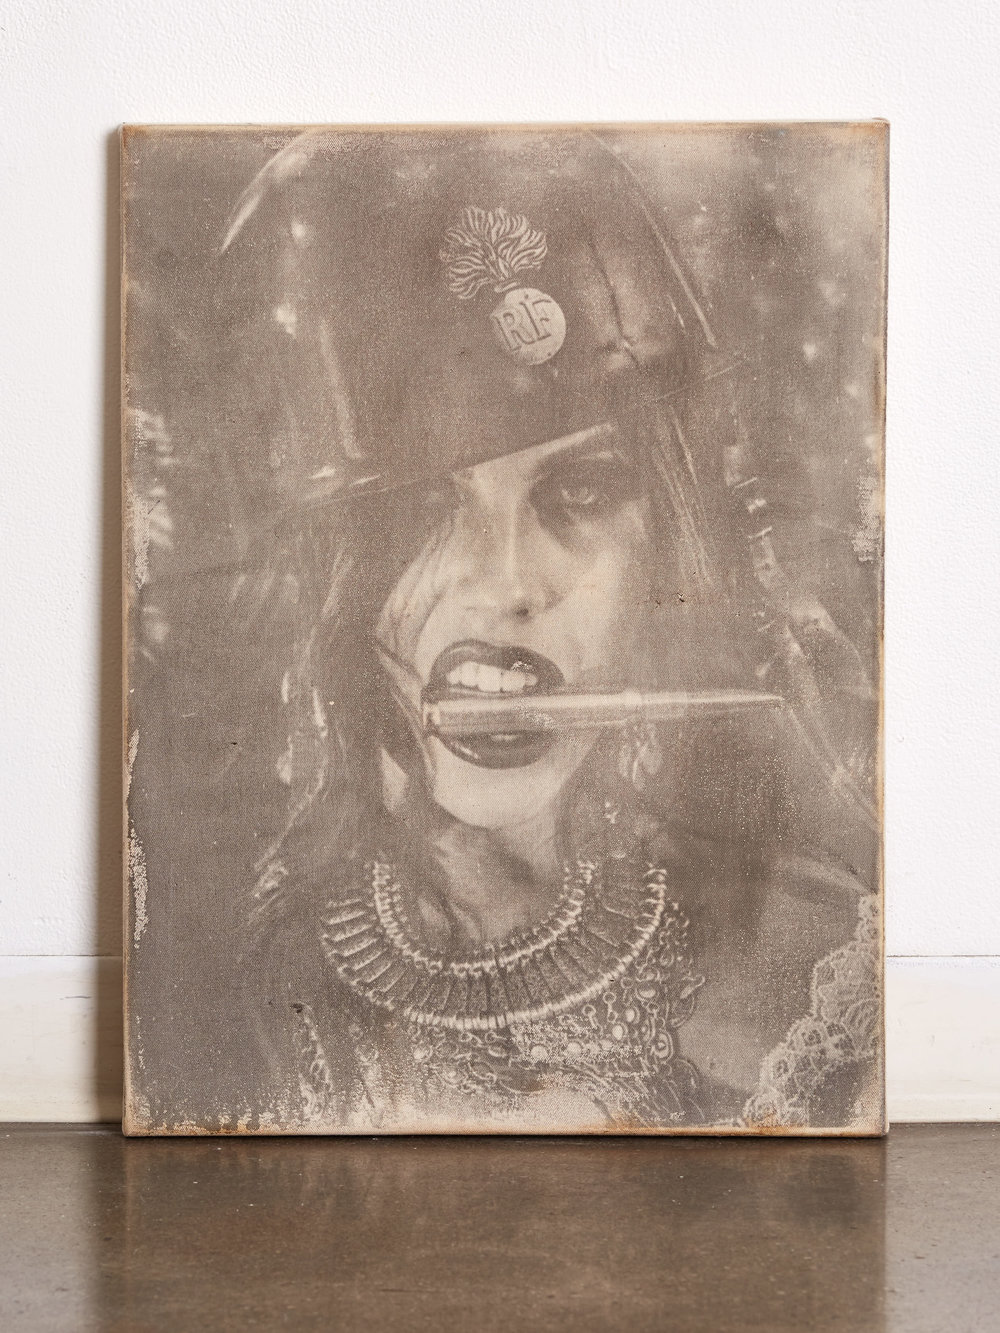 """Bite the Bullet     18x24""""   Experimental Low Contrast Emulsion  Liquid Emulsion Painted on Raw Canvas, Hand-Stretched over 1.5"""" Thick Wood Frame   Ingredients:  Photo (One Femme Fetale, One .50 Caliber Bullet, One French WWI Helmet) Print (Canvas, experimental emulsion, Tecate, Proprietary Chemical Blend & Process)"""